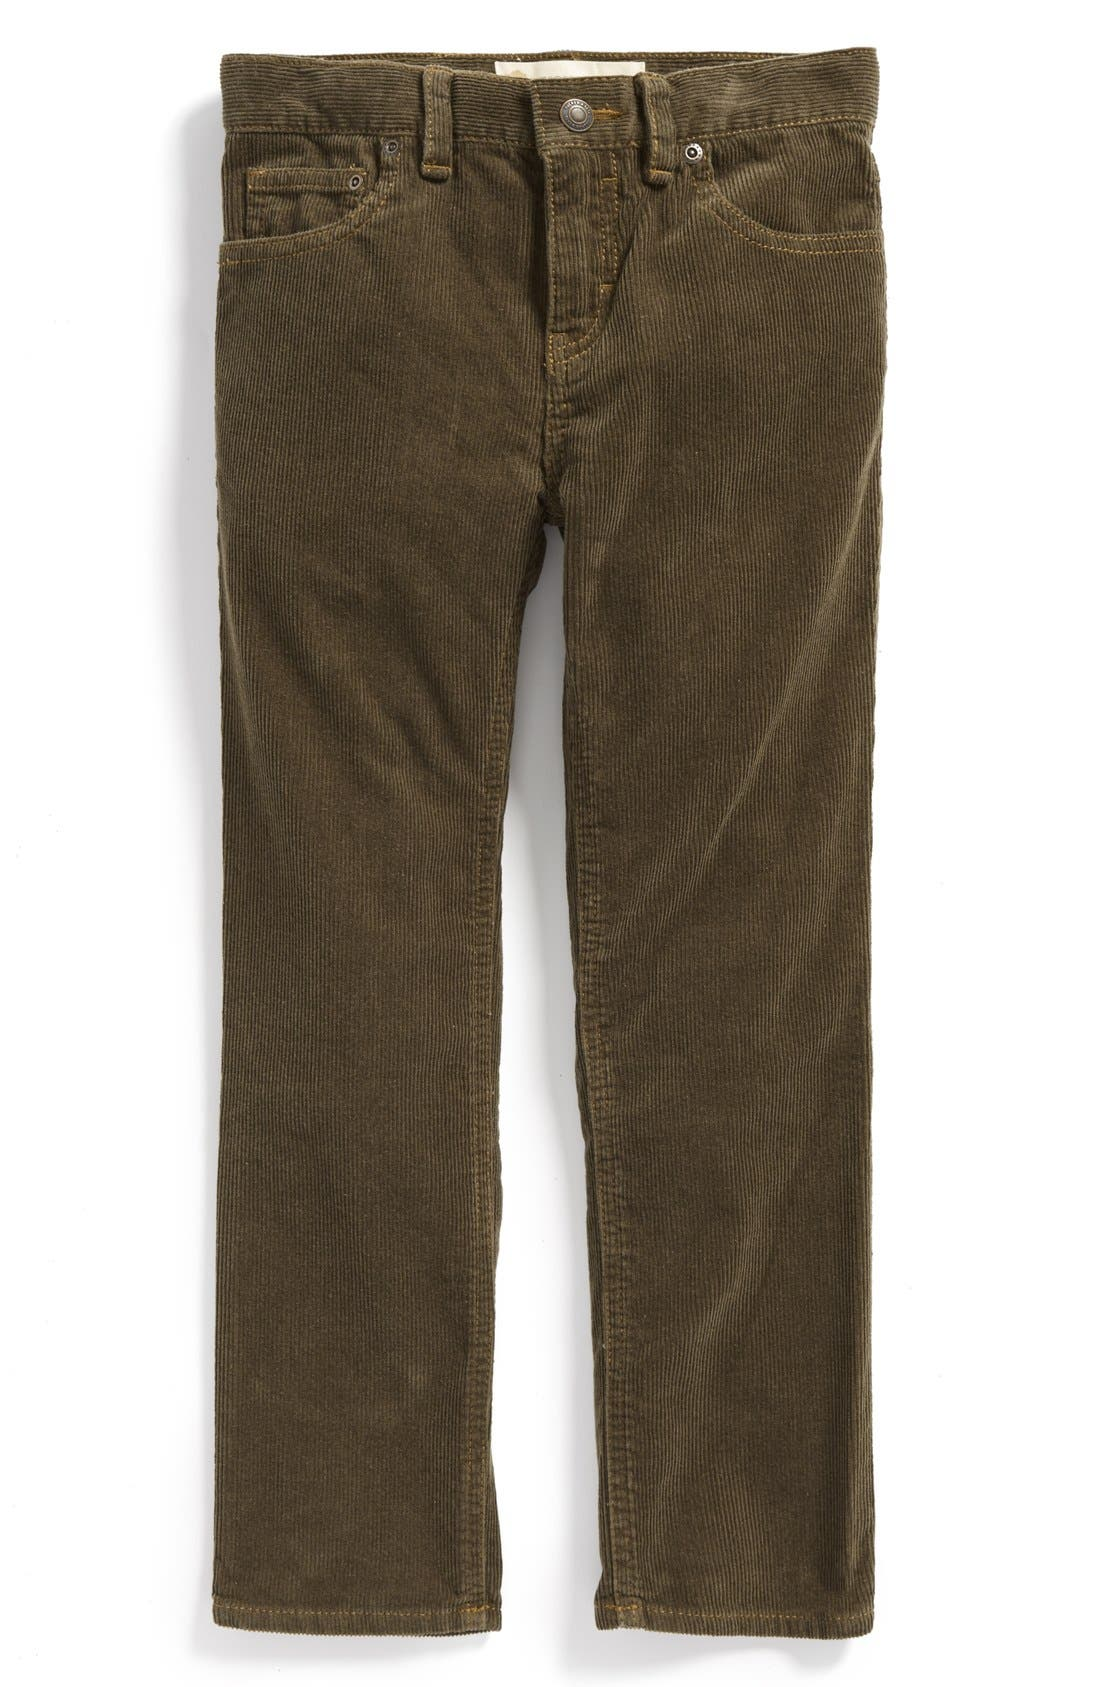 'Townsend' Corduroy Pants,                         Main,                         color, Olive Tarmac